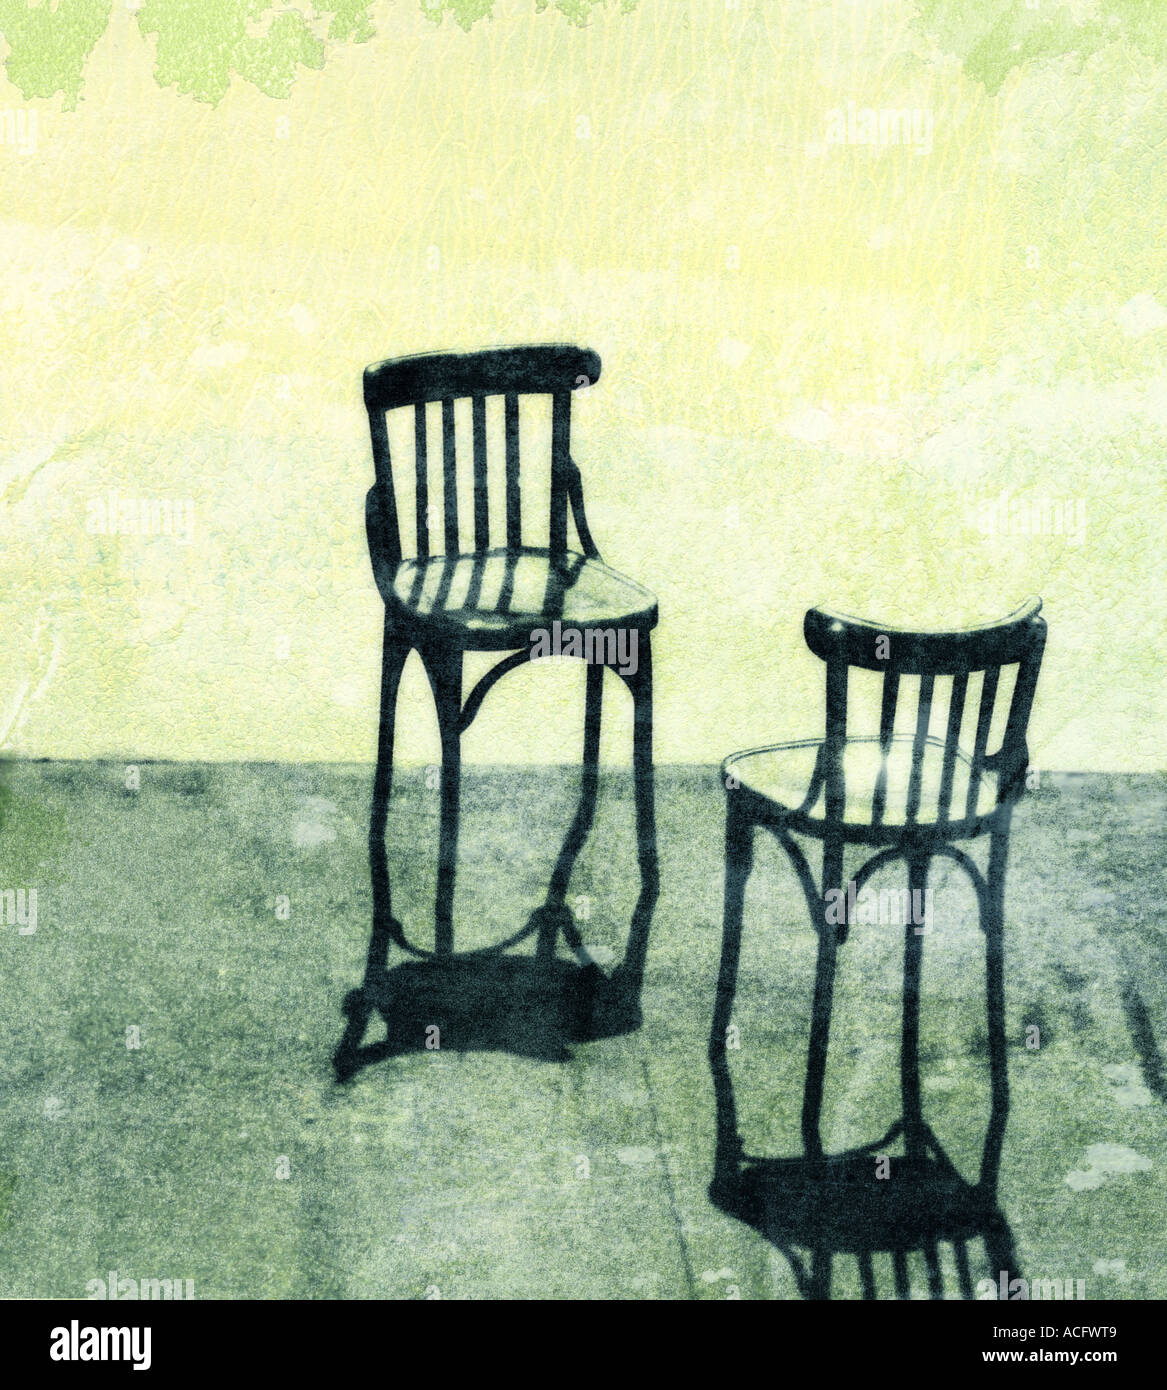 Photo of two chairs - Stock Image